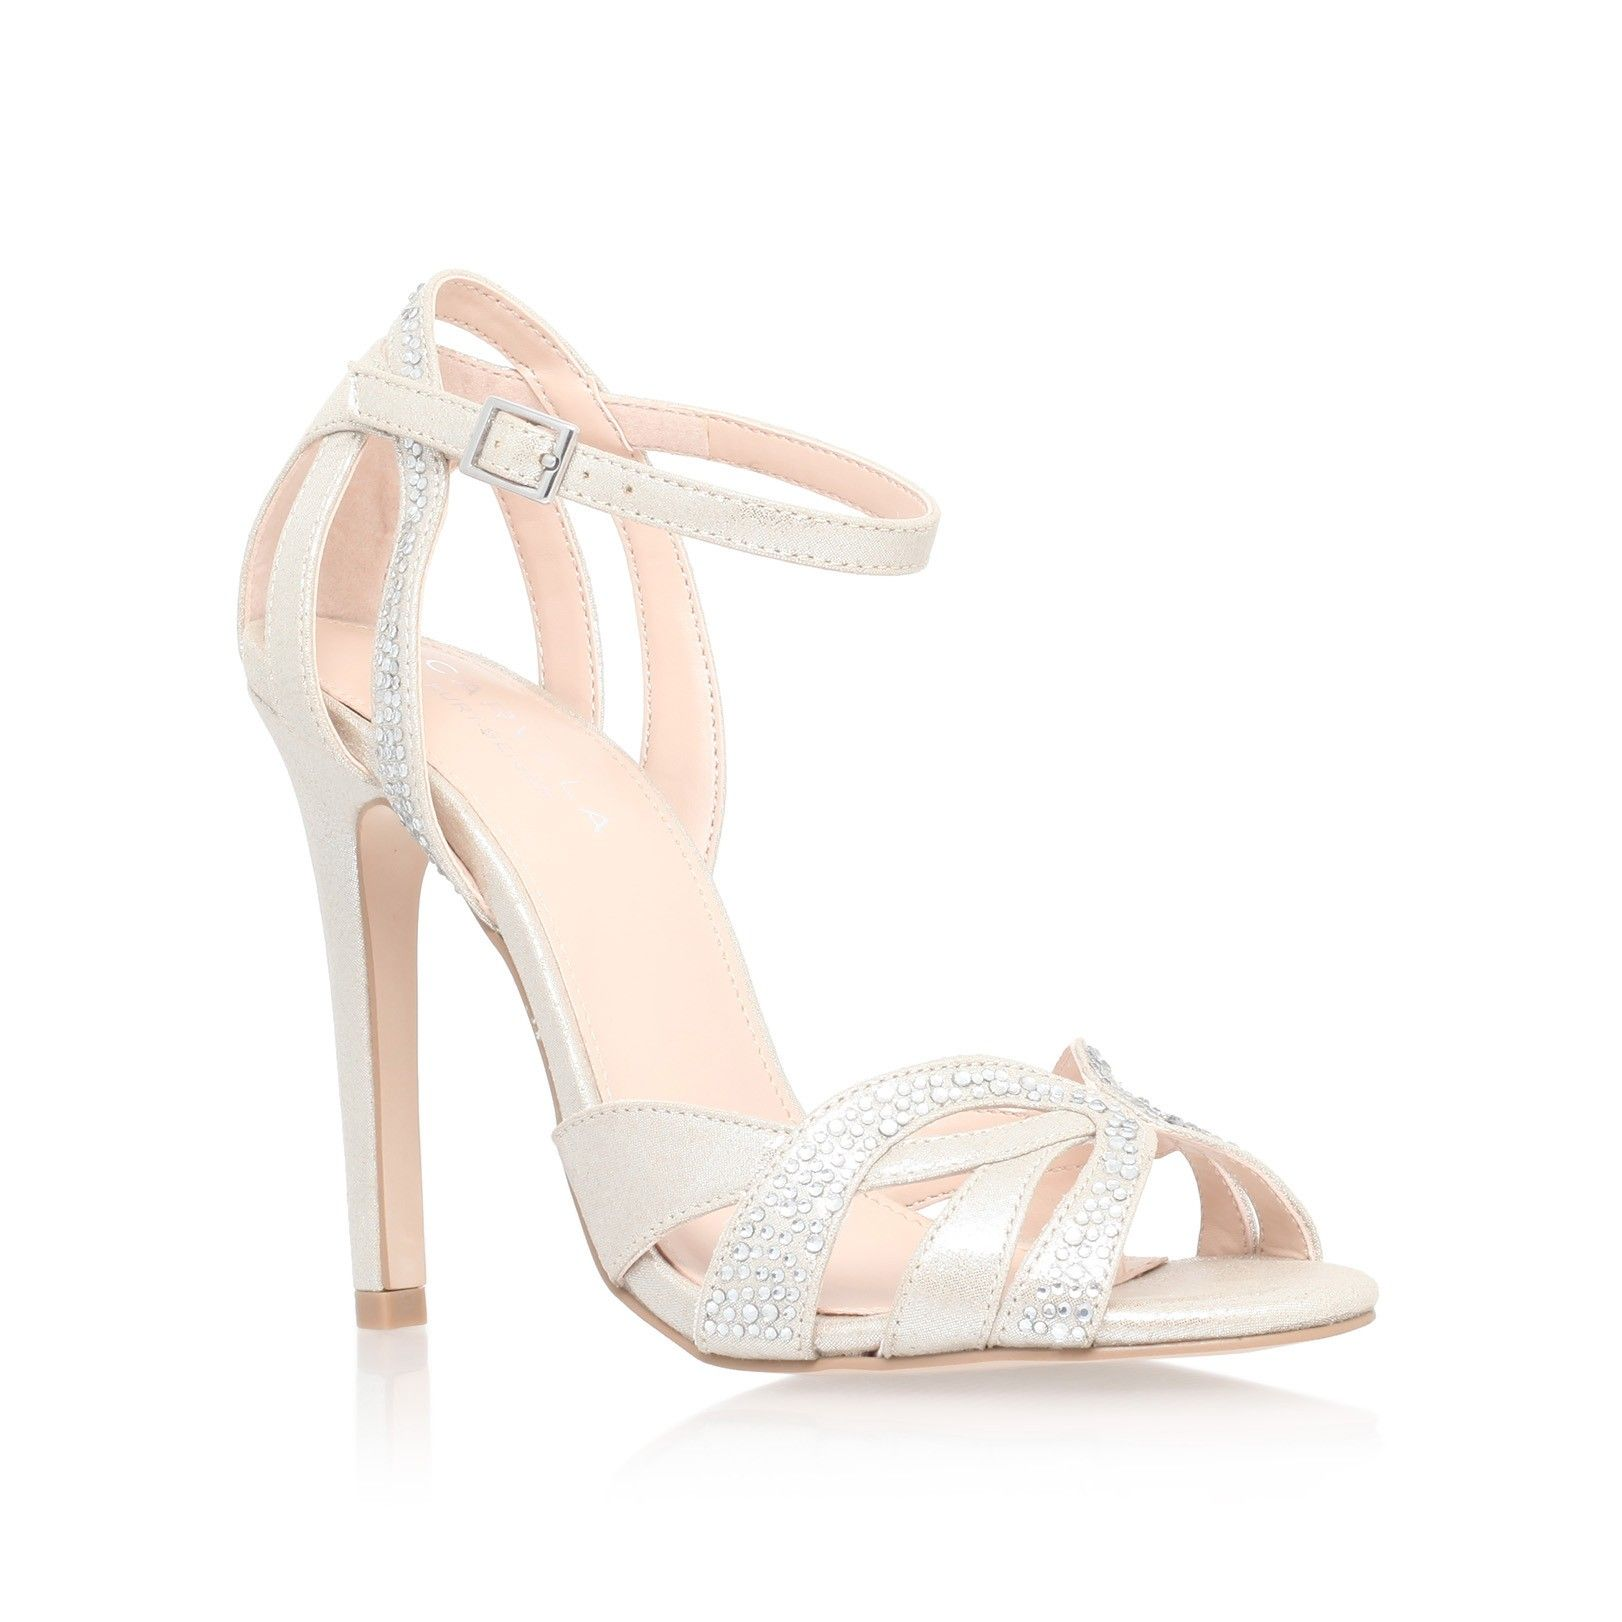 Lana Silver High Heel Sandals From Carvela Kurt Geiger